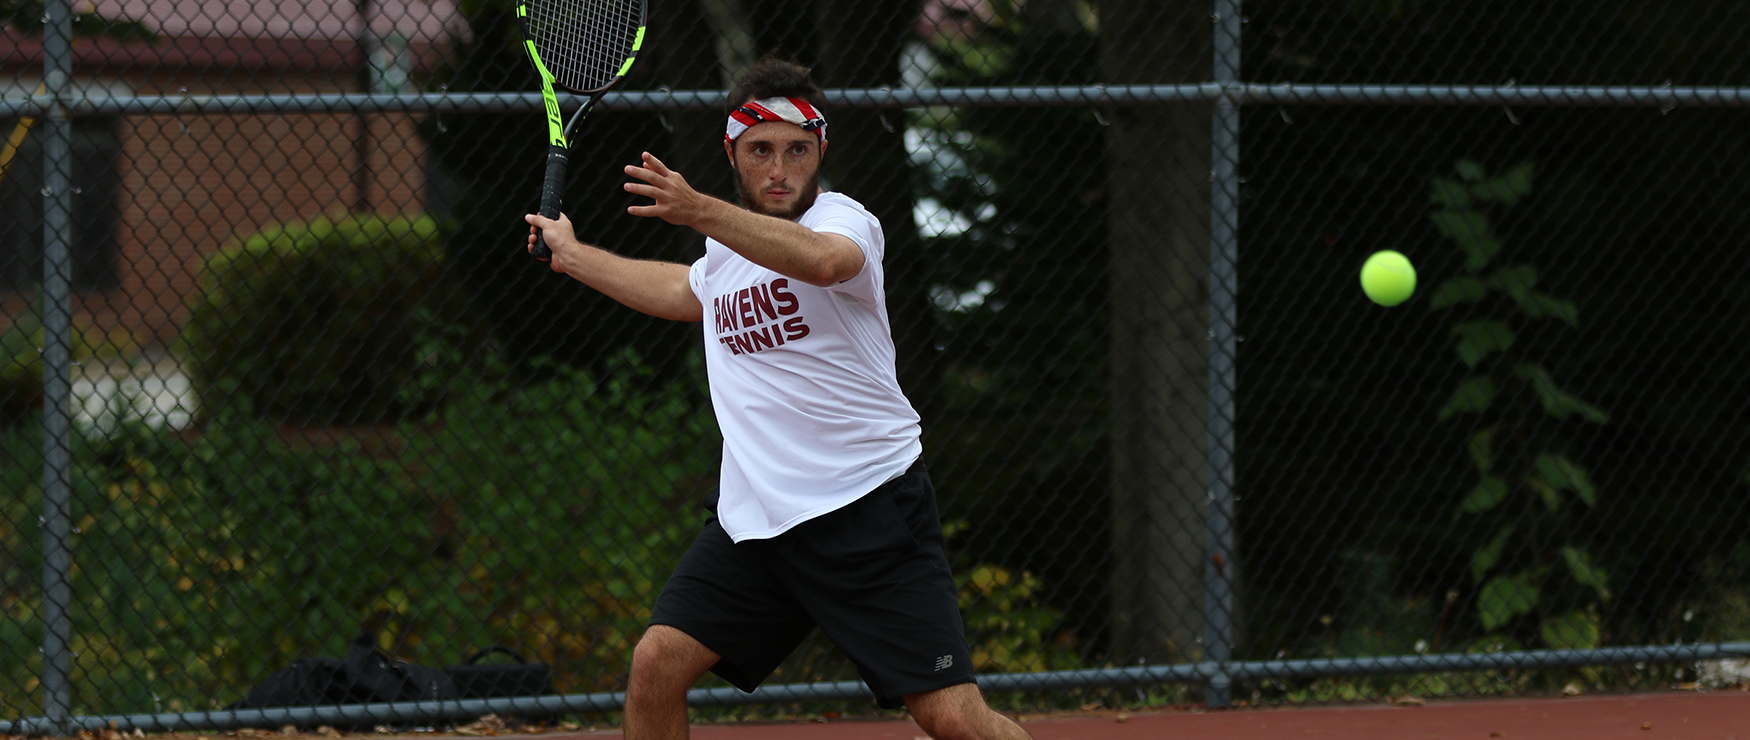 Men's Tennis Squeaks Past Adelphi in NE10 Opener, 4-3